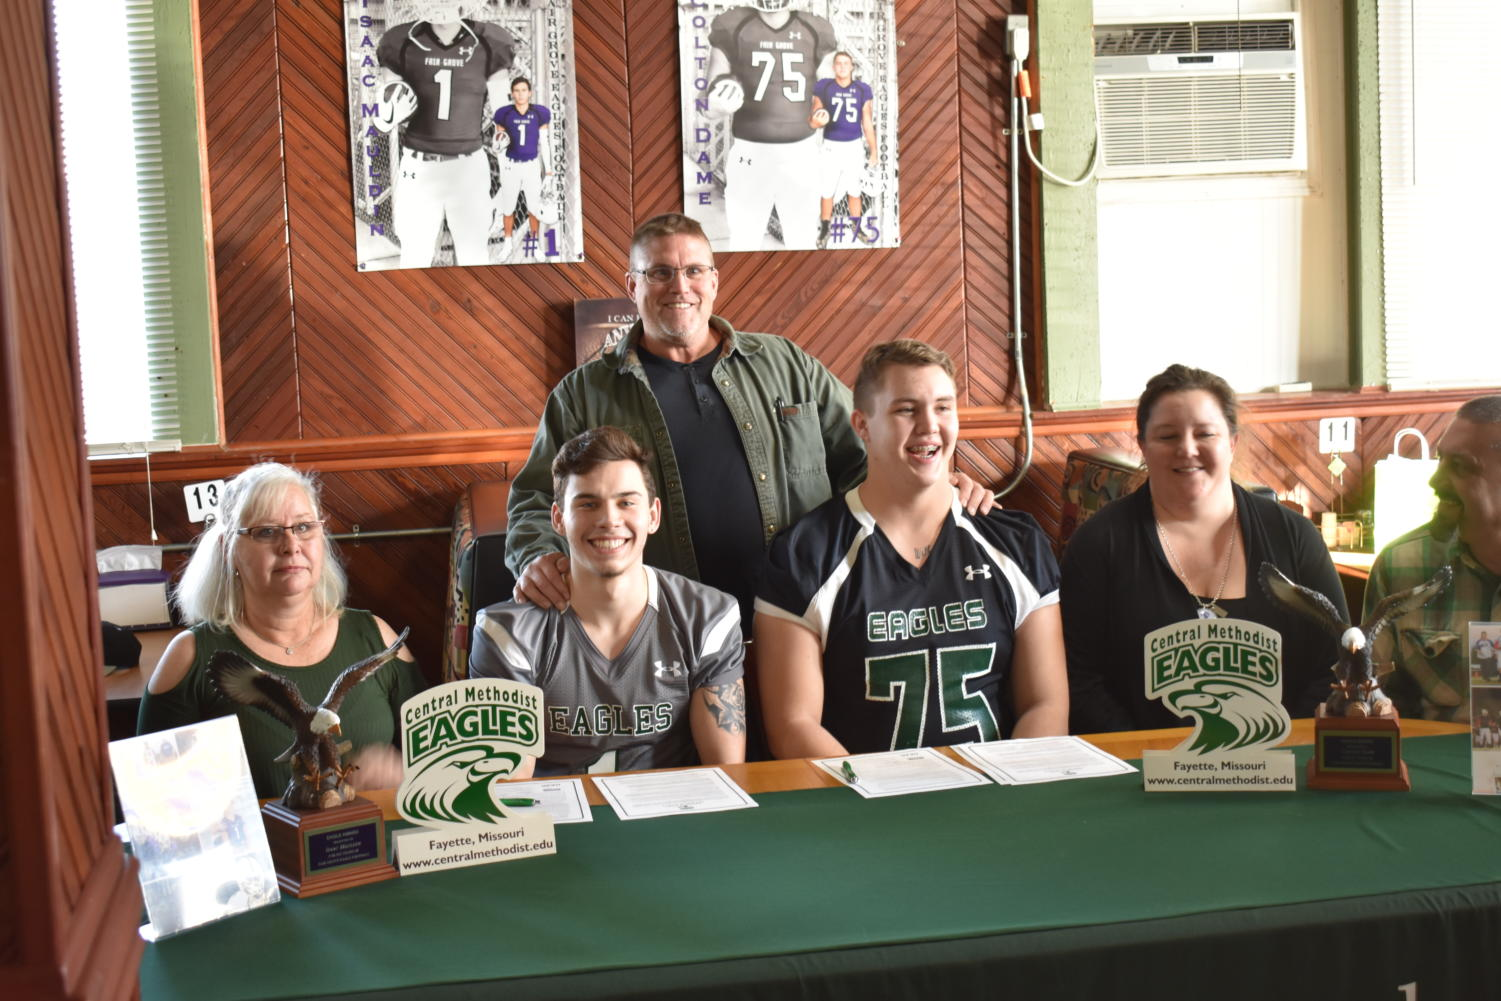 Seniors Colton Dame and Isaac Mauldin sign to play football for Central Methodist University